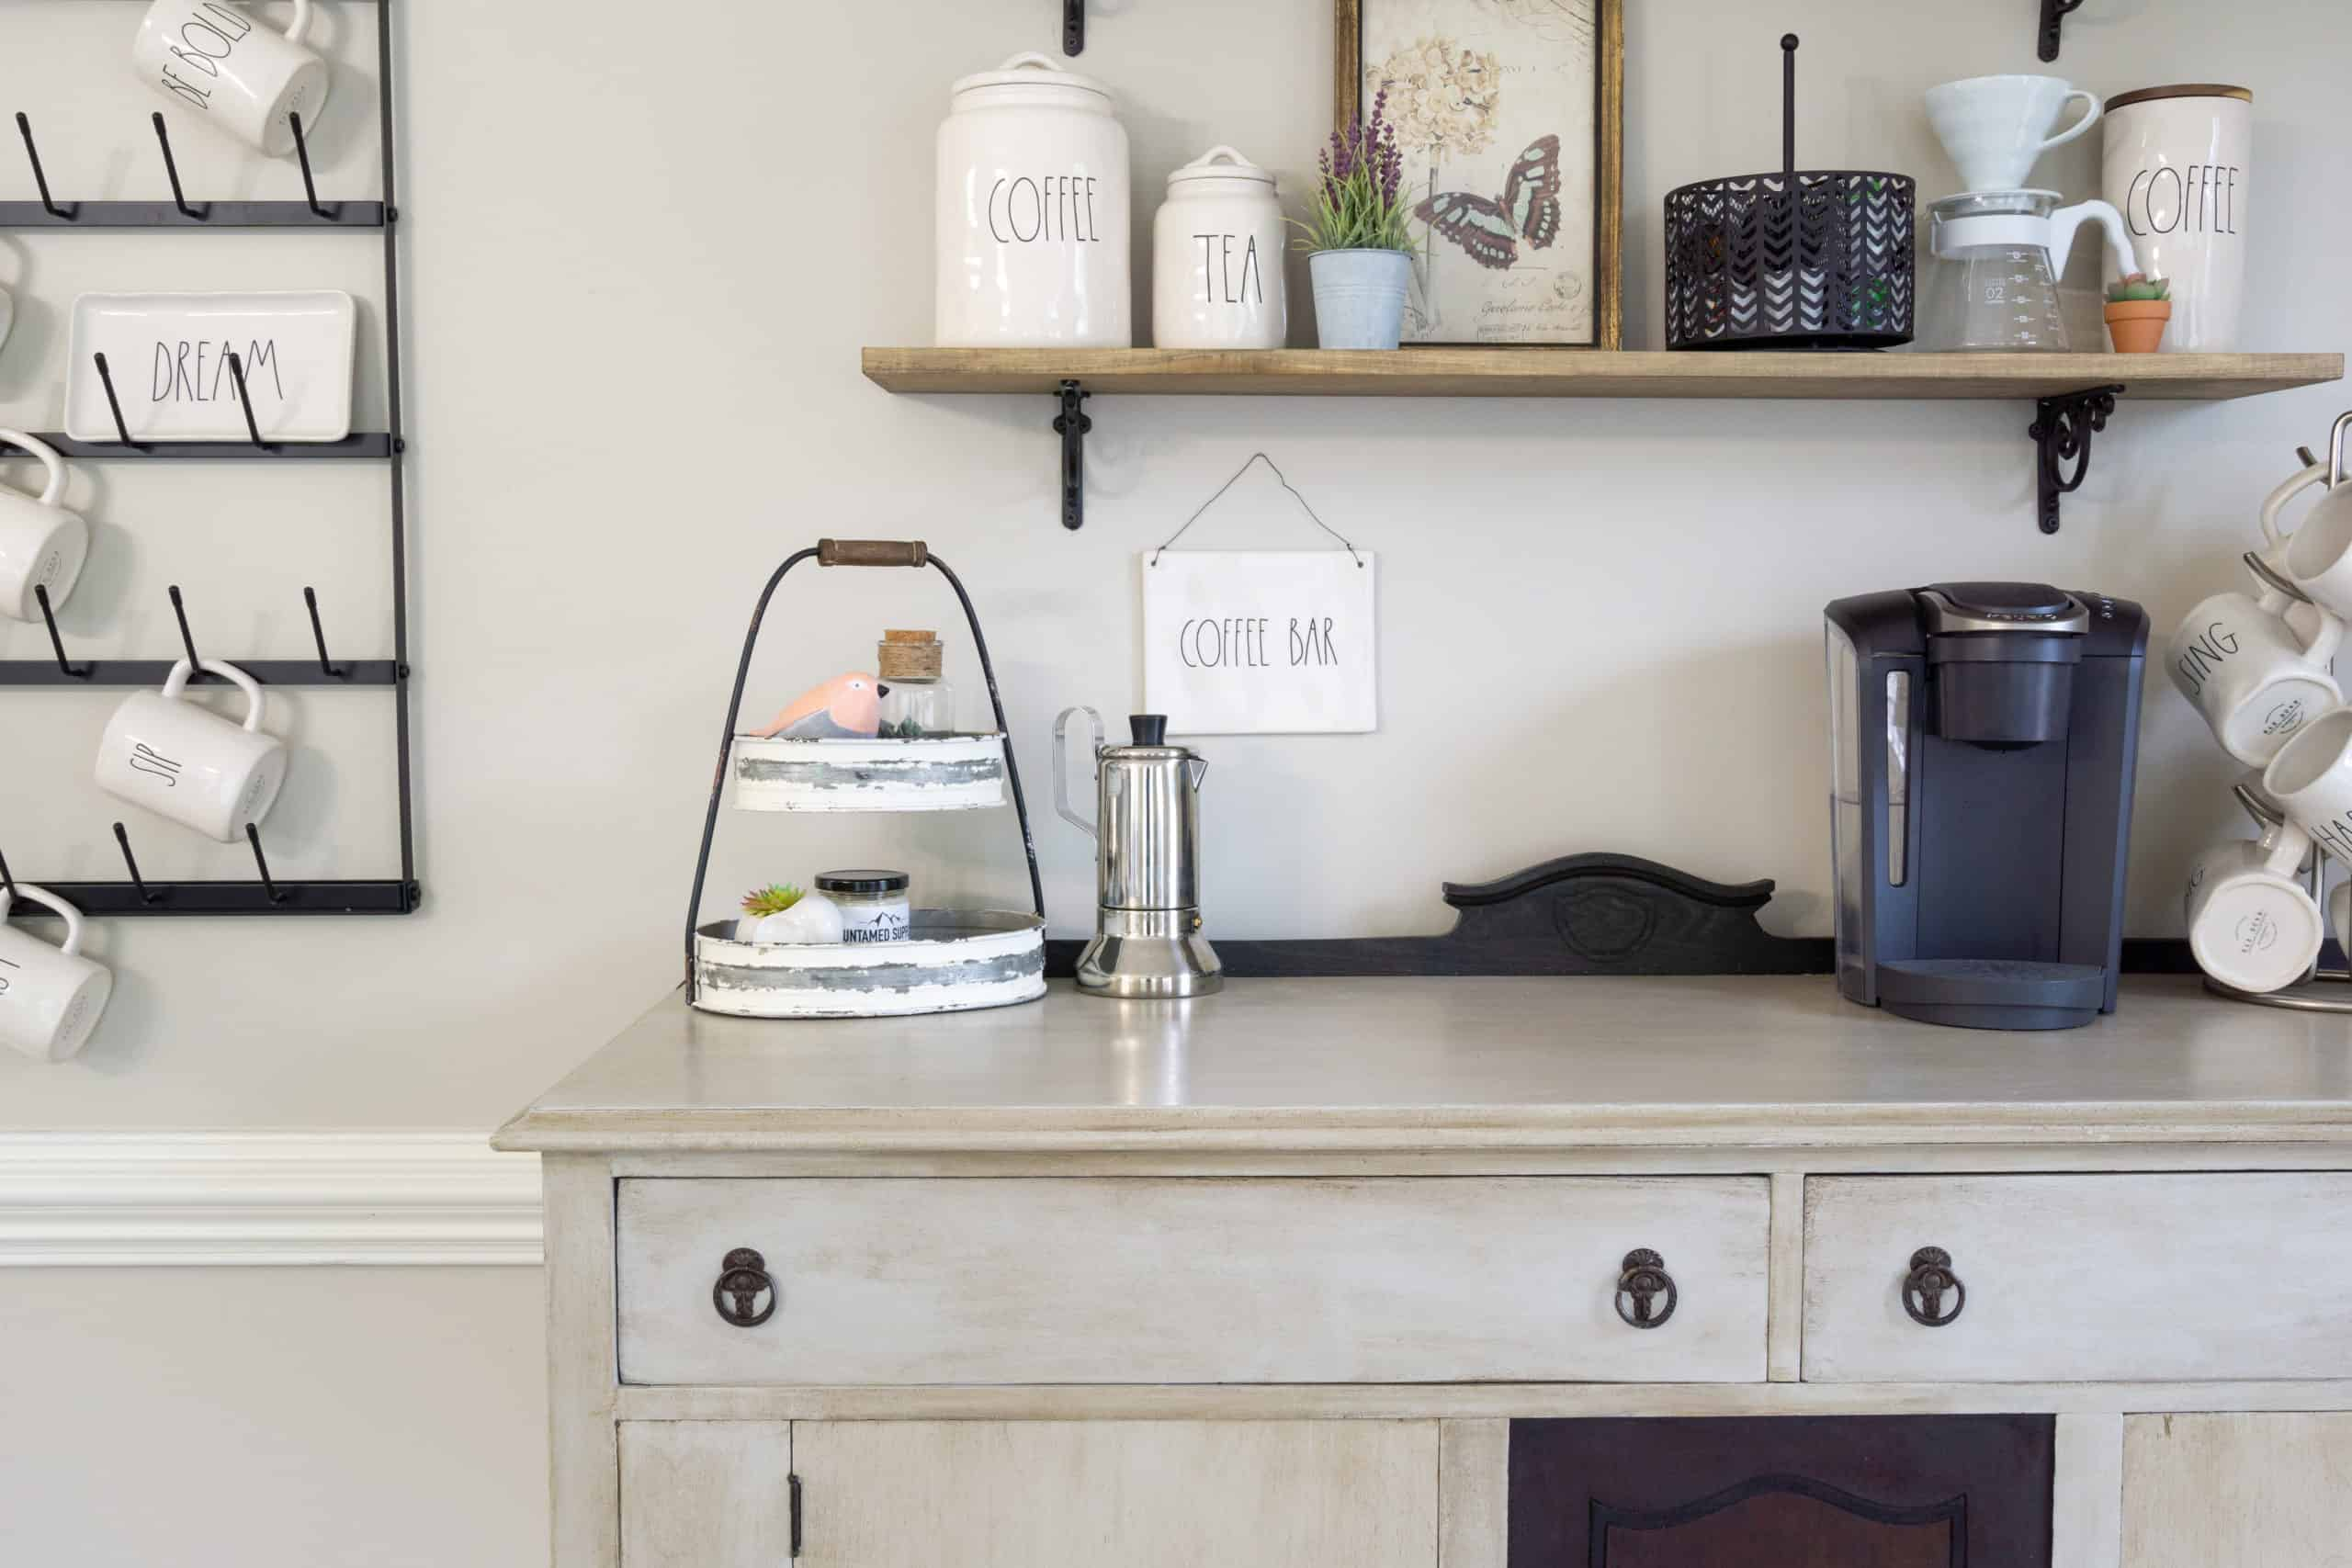 I'm sharing 6 coffee bar essentials, now that I finally have my very own coffee bar.